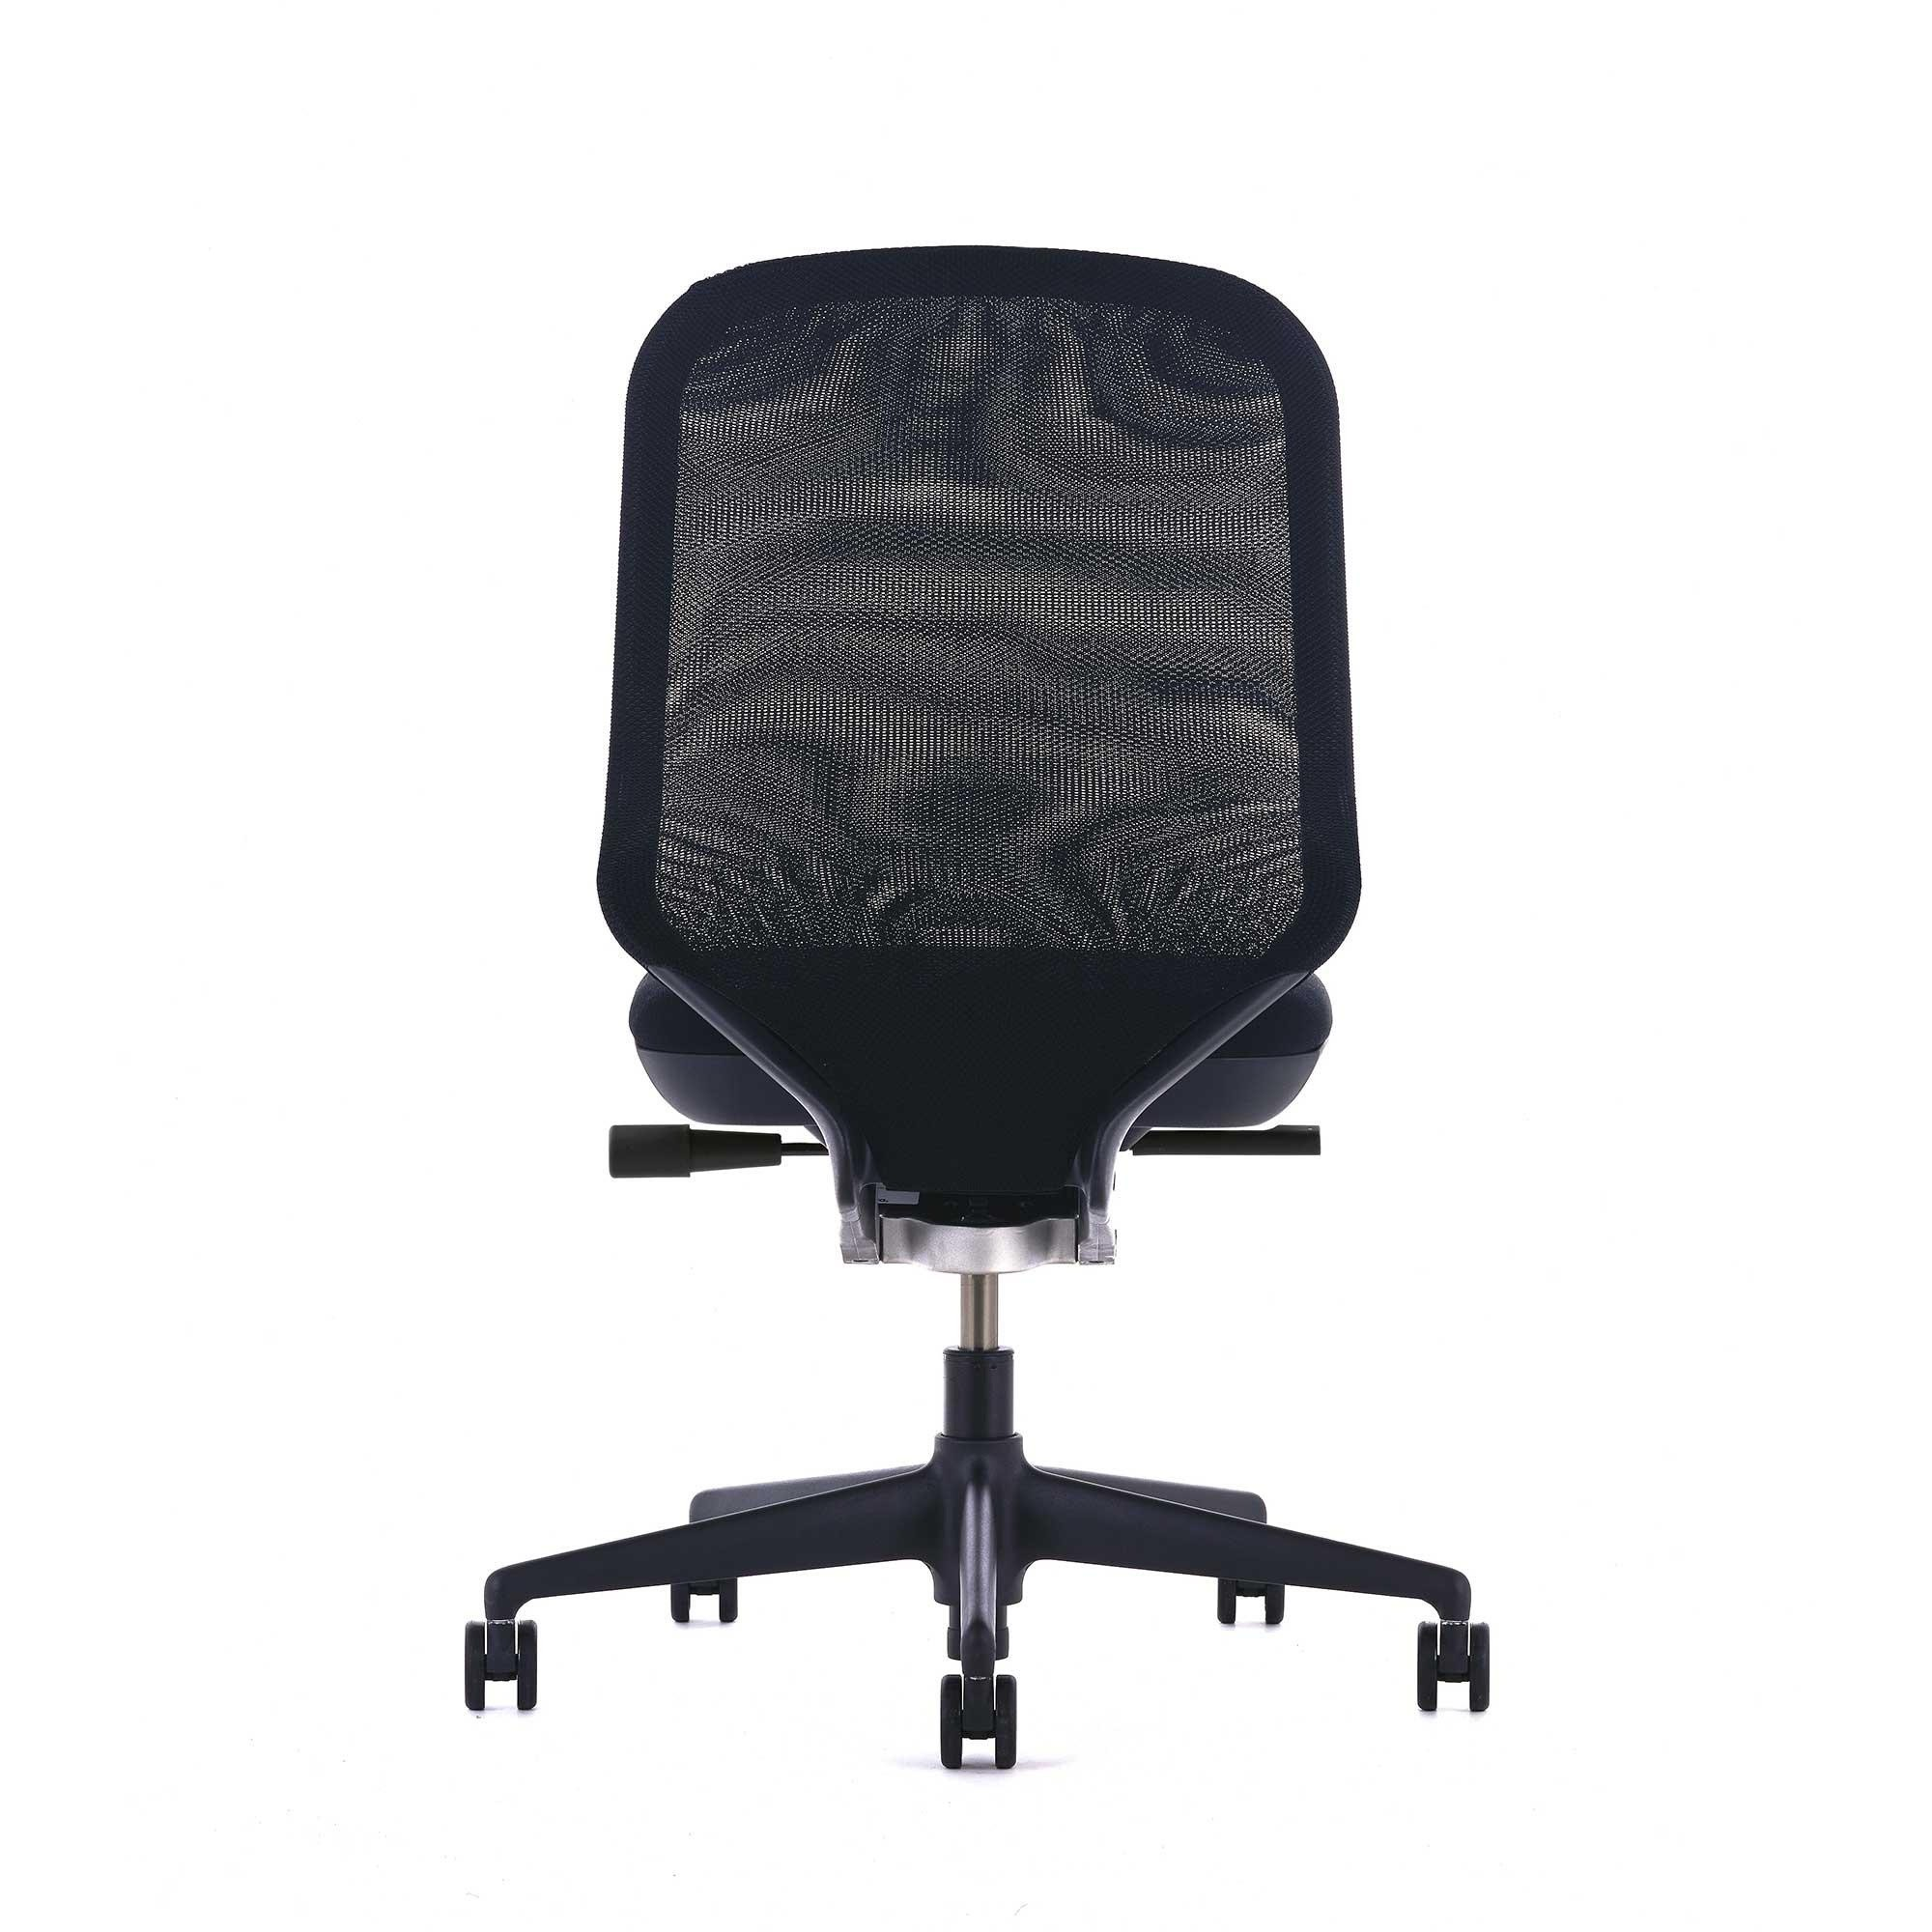 vitra medapal office chair without lumbar support ambientedirect rh ambientedirect com